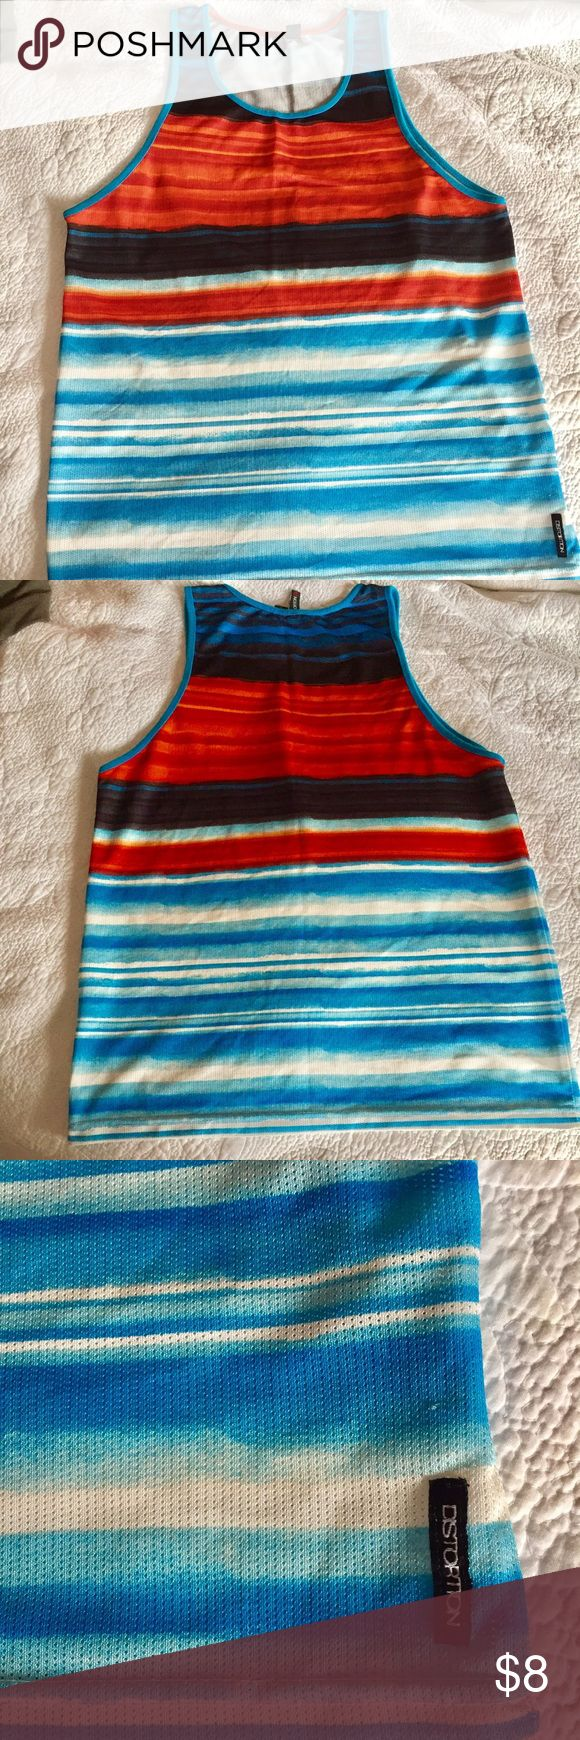 Distortion™ multi stripe tank Men's multi-colored, multi stripe tank. 100% polyester breathable mesh.  Very comfortable and keeps you cool! Size Men's XL.  Excellent used condition. Distortion Shirts Tank Tops